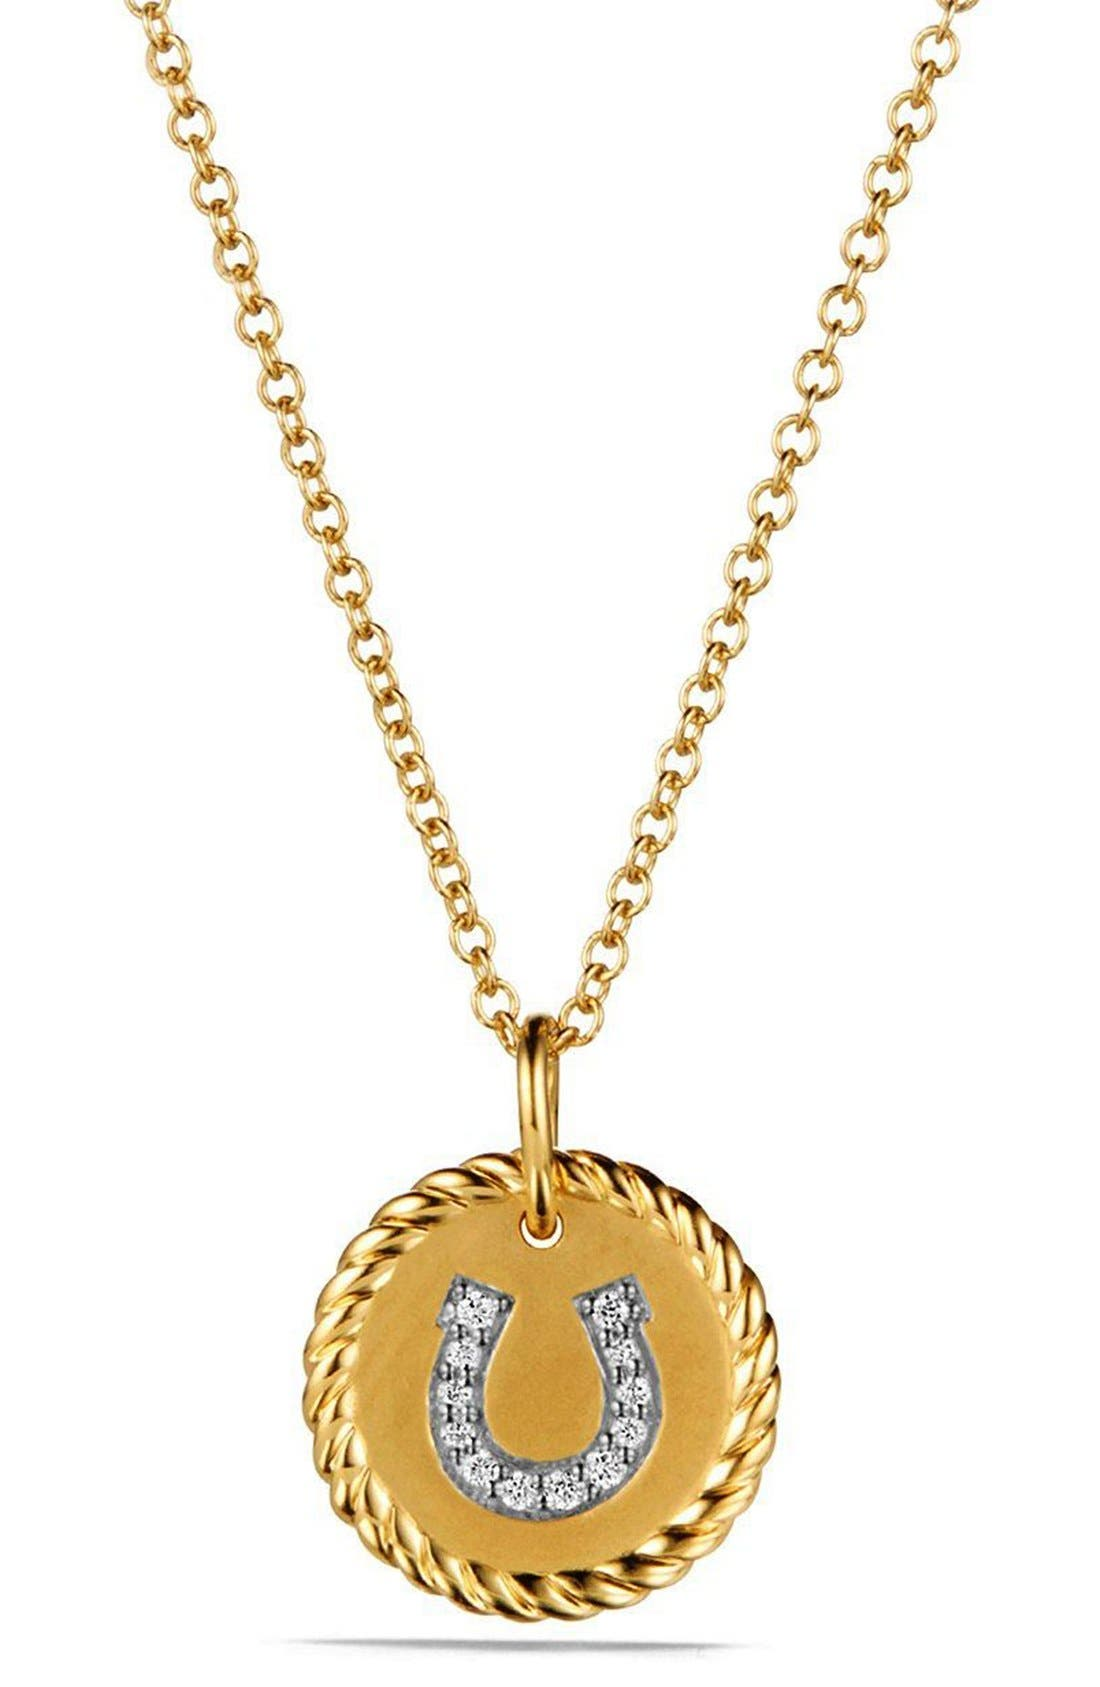 'Cable Collectibles' Horseshoe Charm Necklace with Diamonds in Gold,                         Main,                         color, Gold